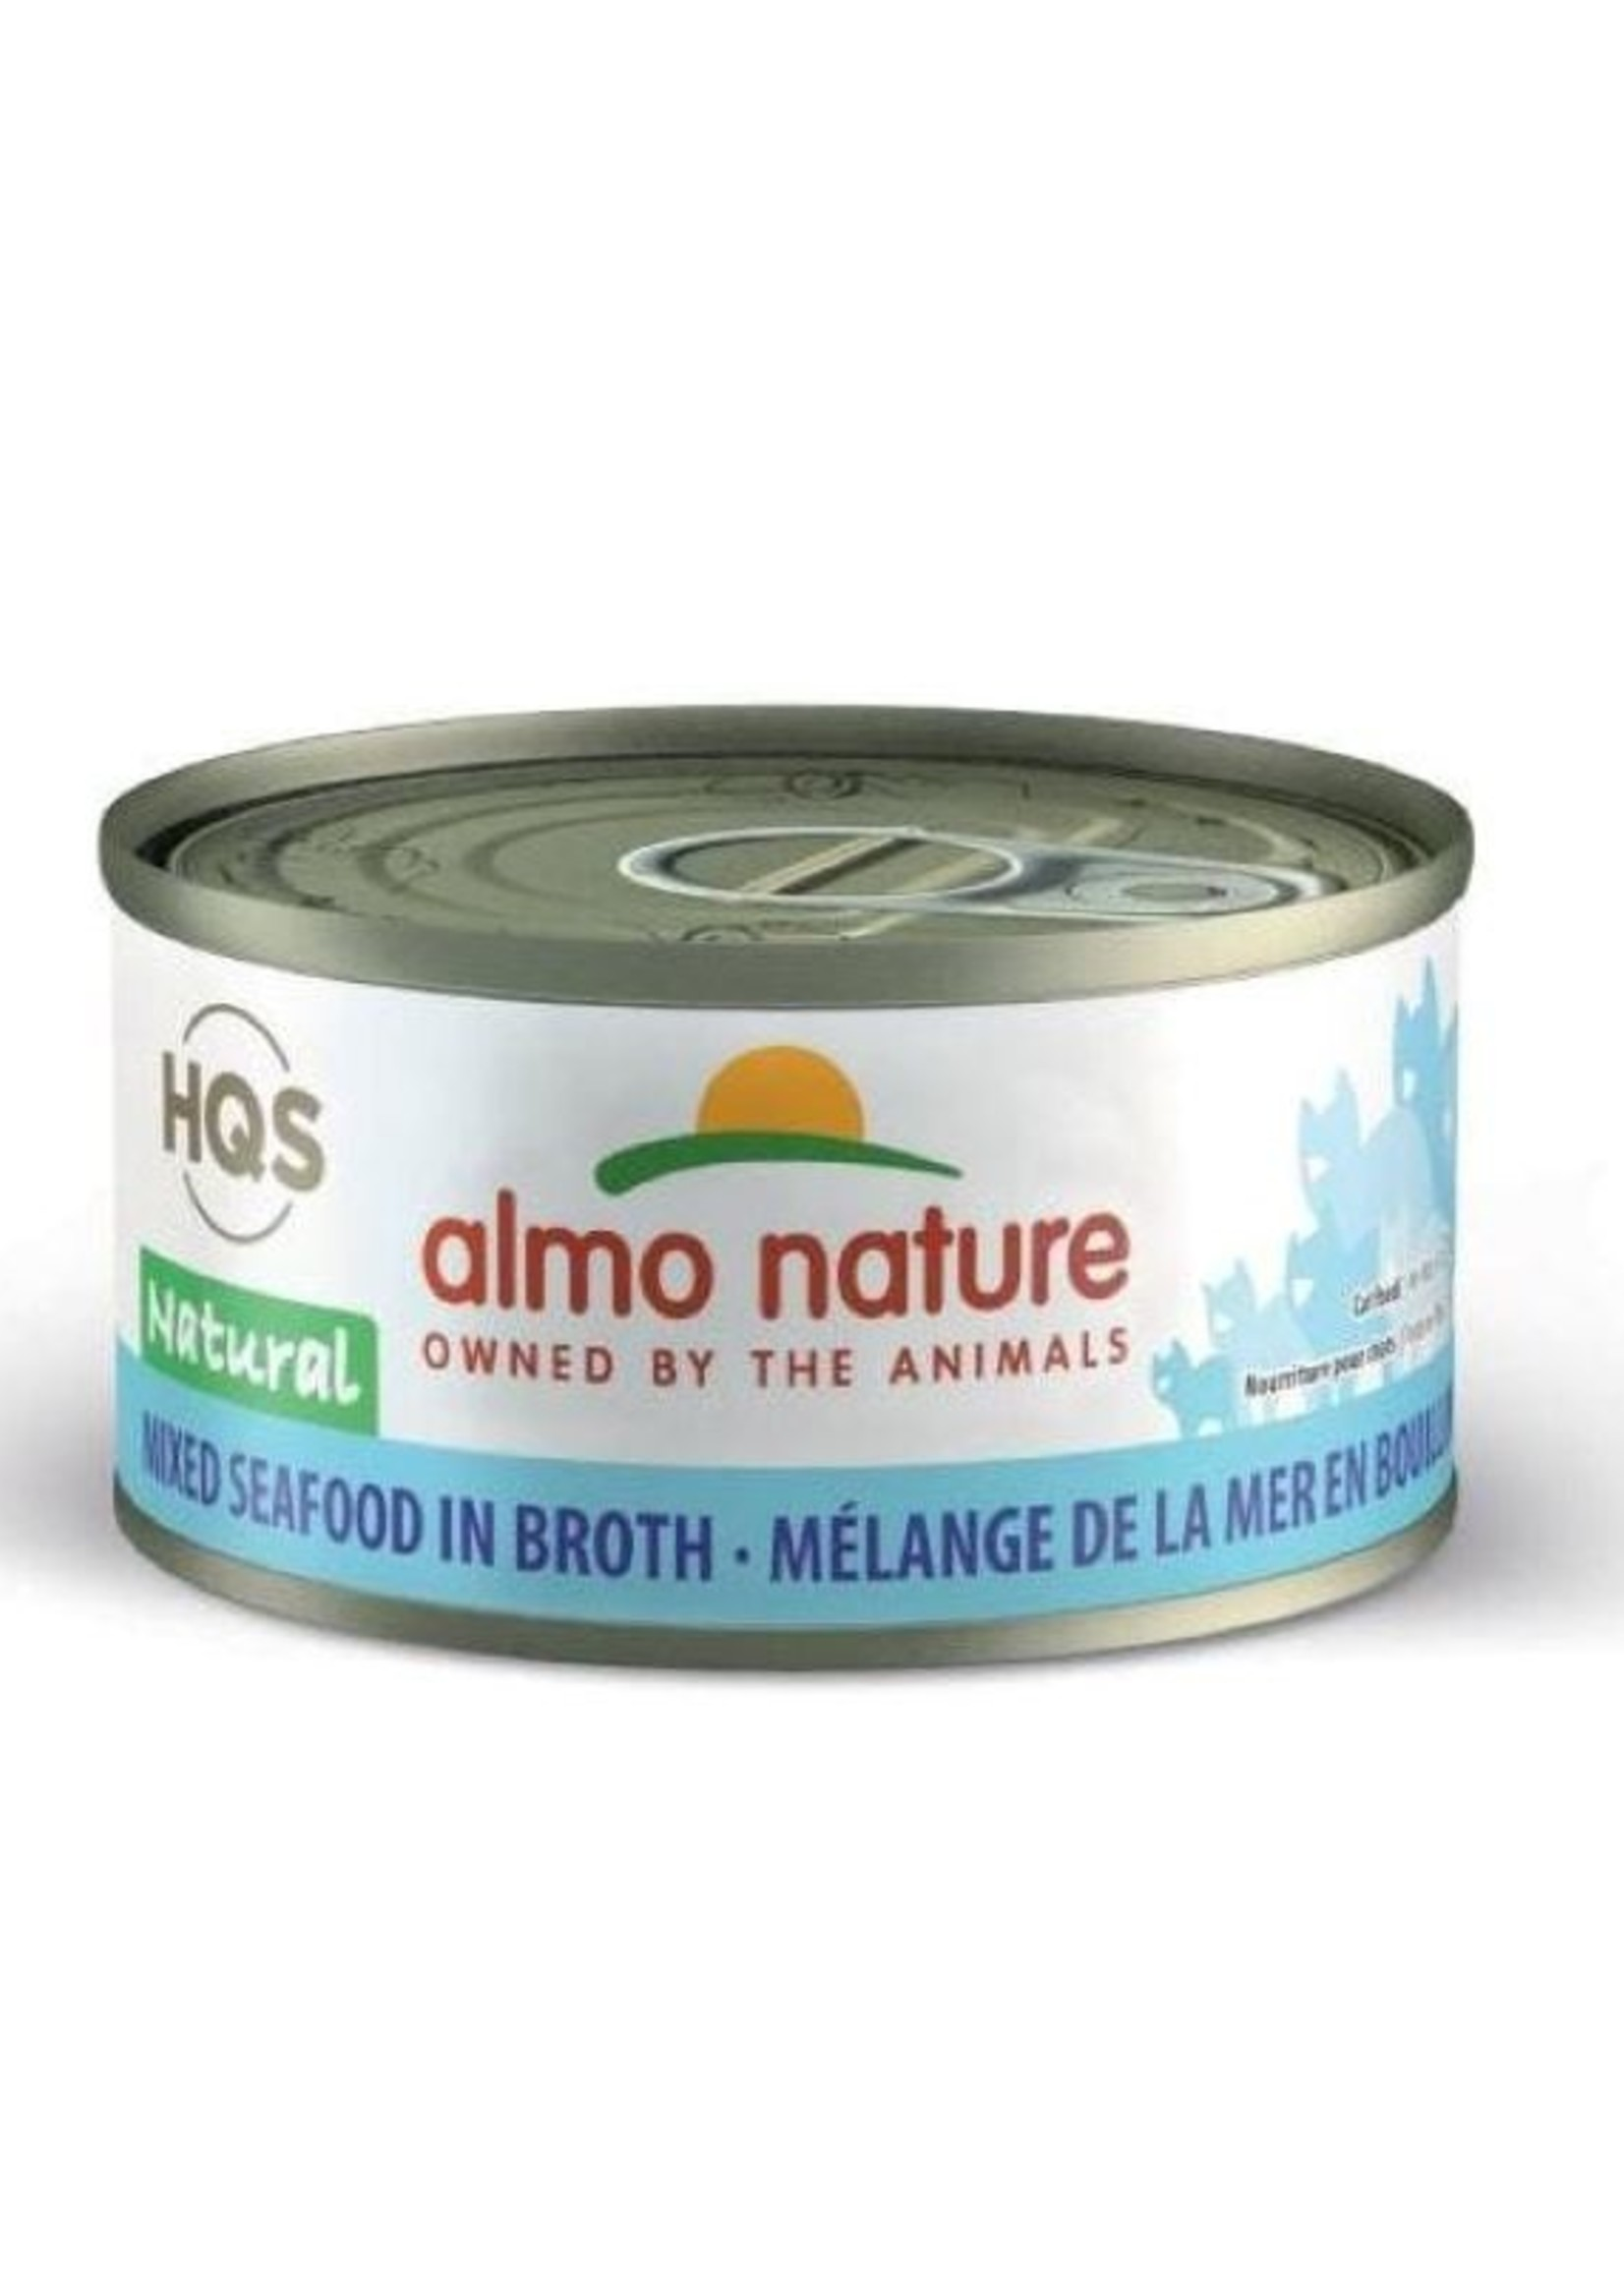 Almo Nature© Almo Nature HQS Natural Mixed Seafood in Broth 70g